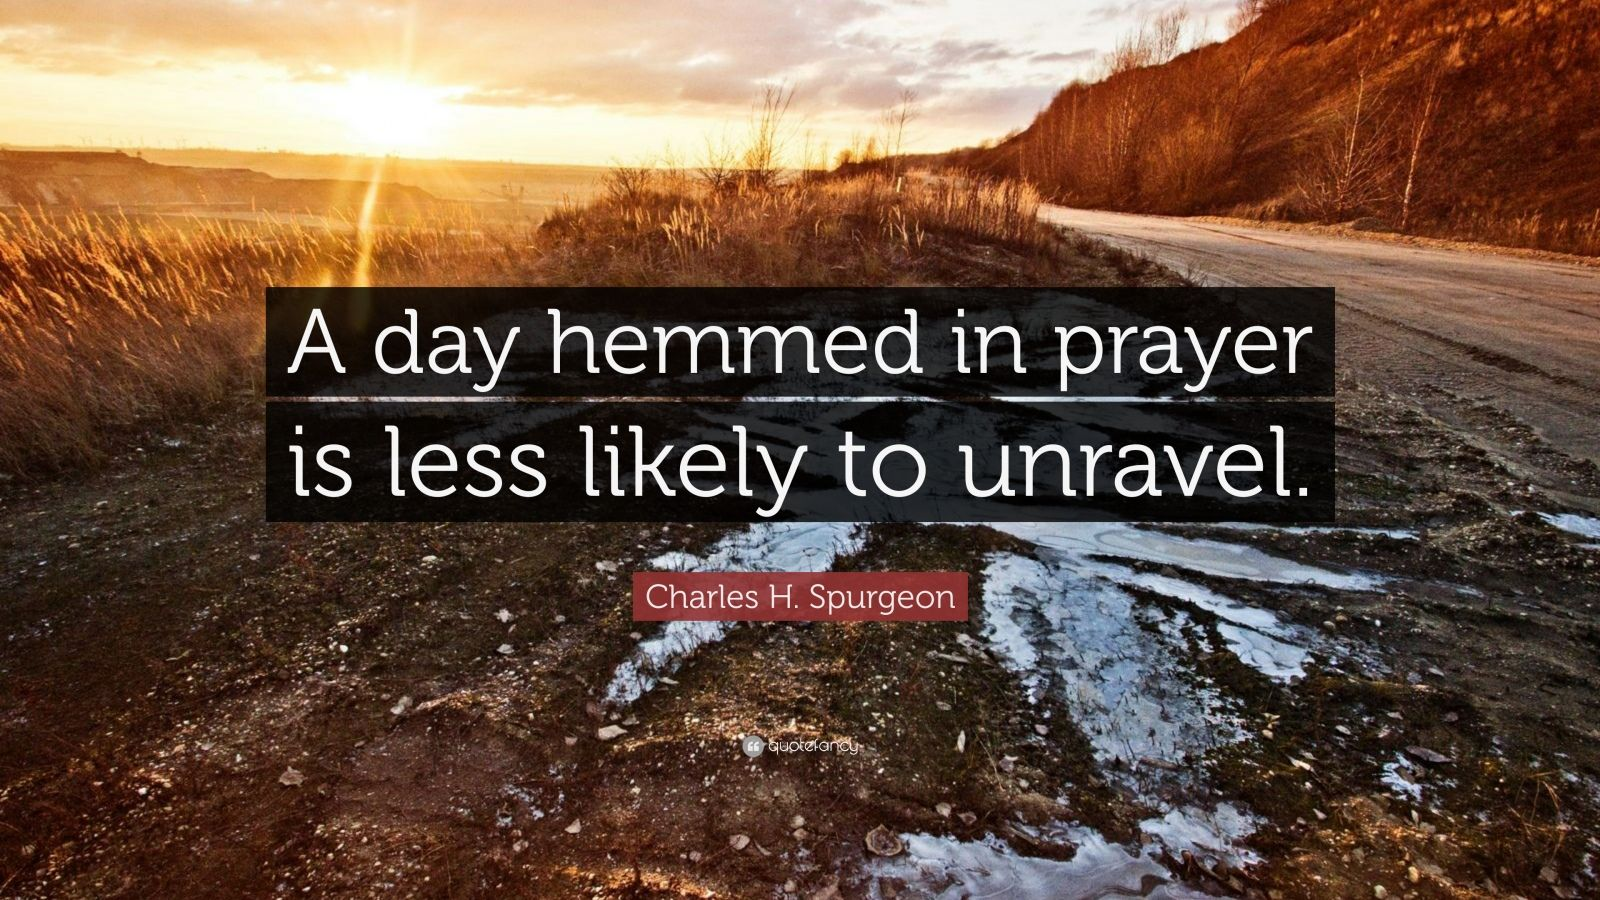 """Charles H. Spurgeon Quote: """"A day hemmed in prayer is less likely to unravel."""""""